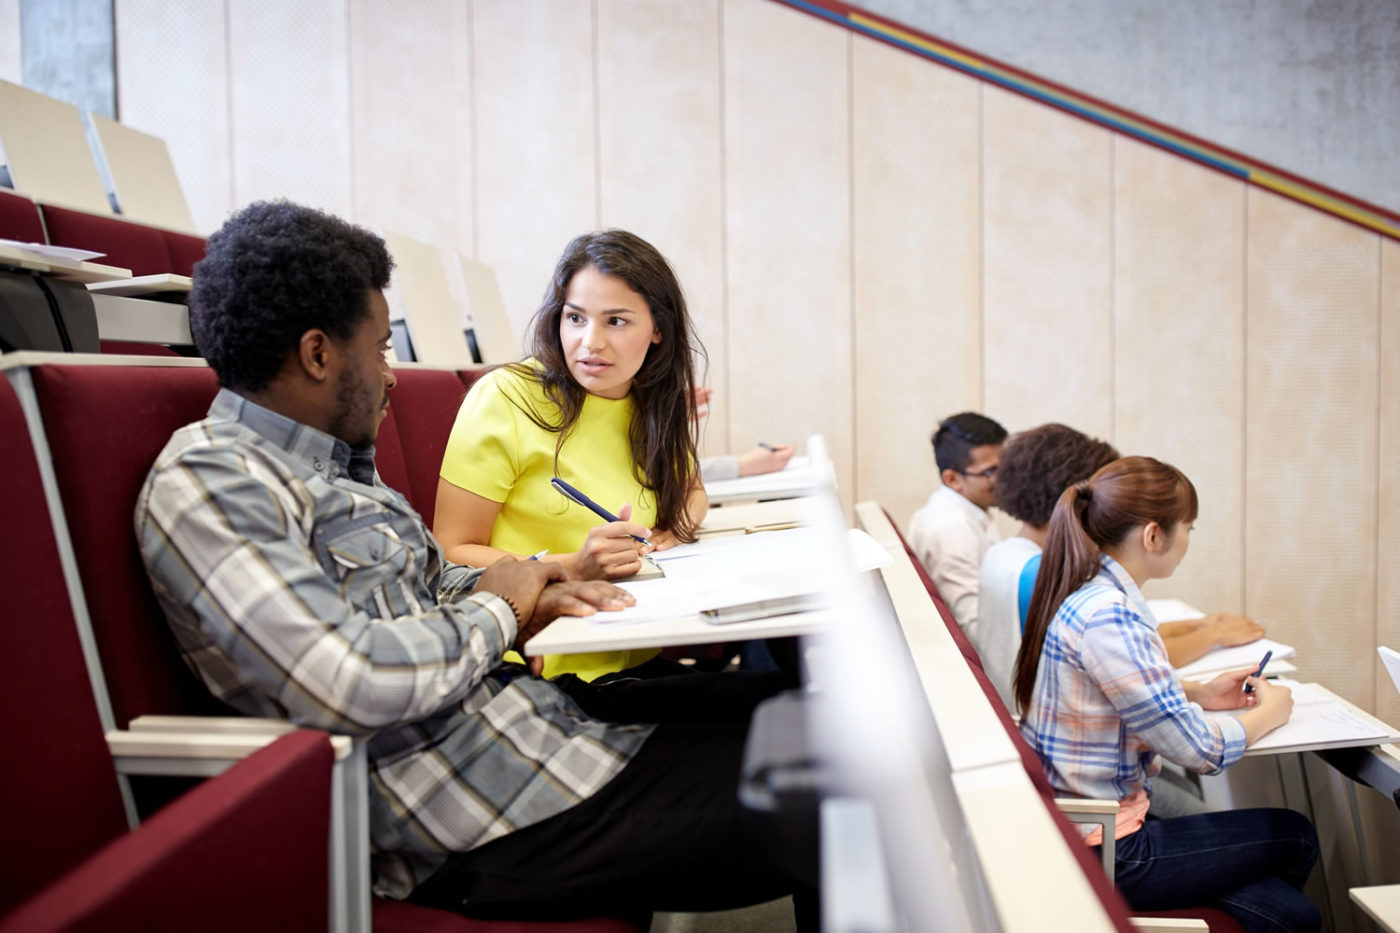 Students discussing topics in lecture hall